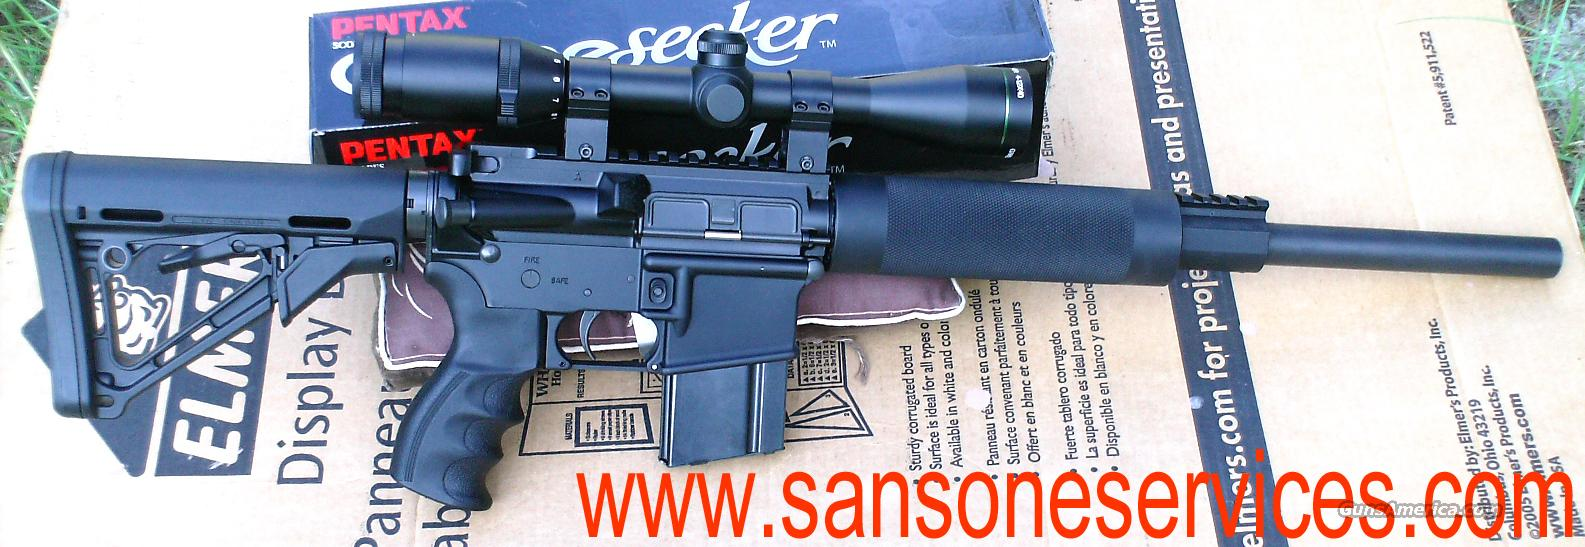 AR15 chambered in 7.62x39  Guns > Rifles > AR-15 Rifles - Small Manufacturers > Complete Rifle